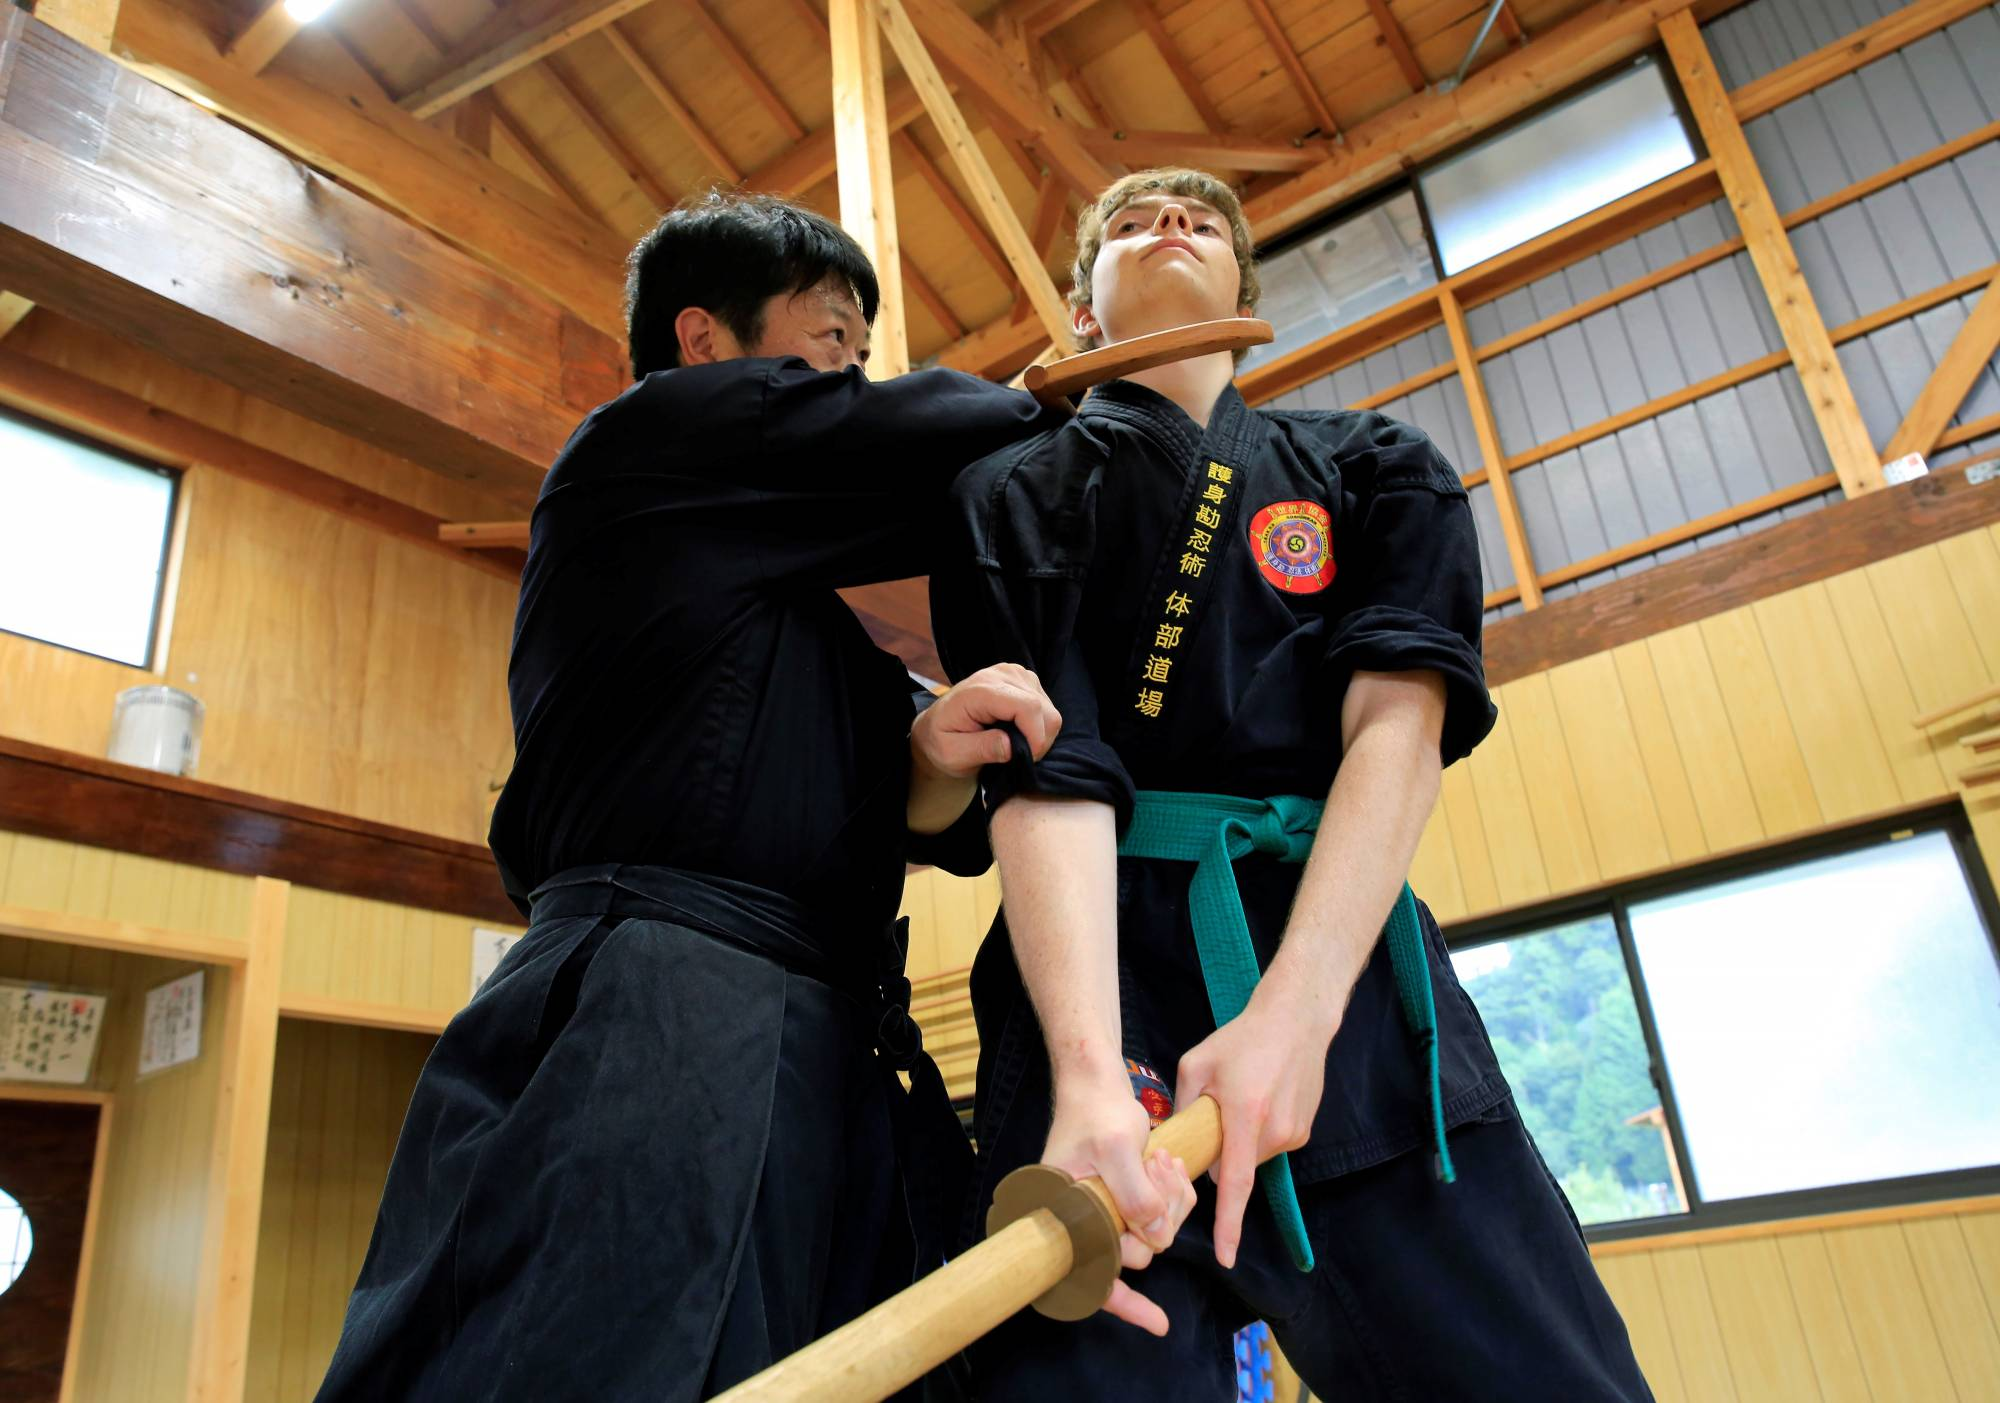 Genichi Mitsuhashi, 45, the first person to hold a degree from Mie University's graduate course on ninja studies, teaches martial arts to a guest in a training hall next to his home in Iga, Mie Prefecture, on July 30. | REUTERS